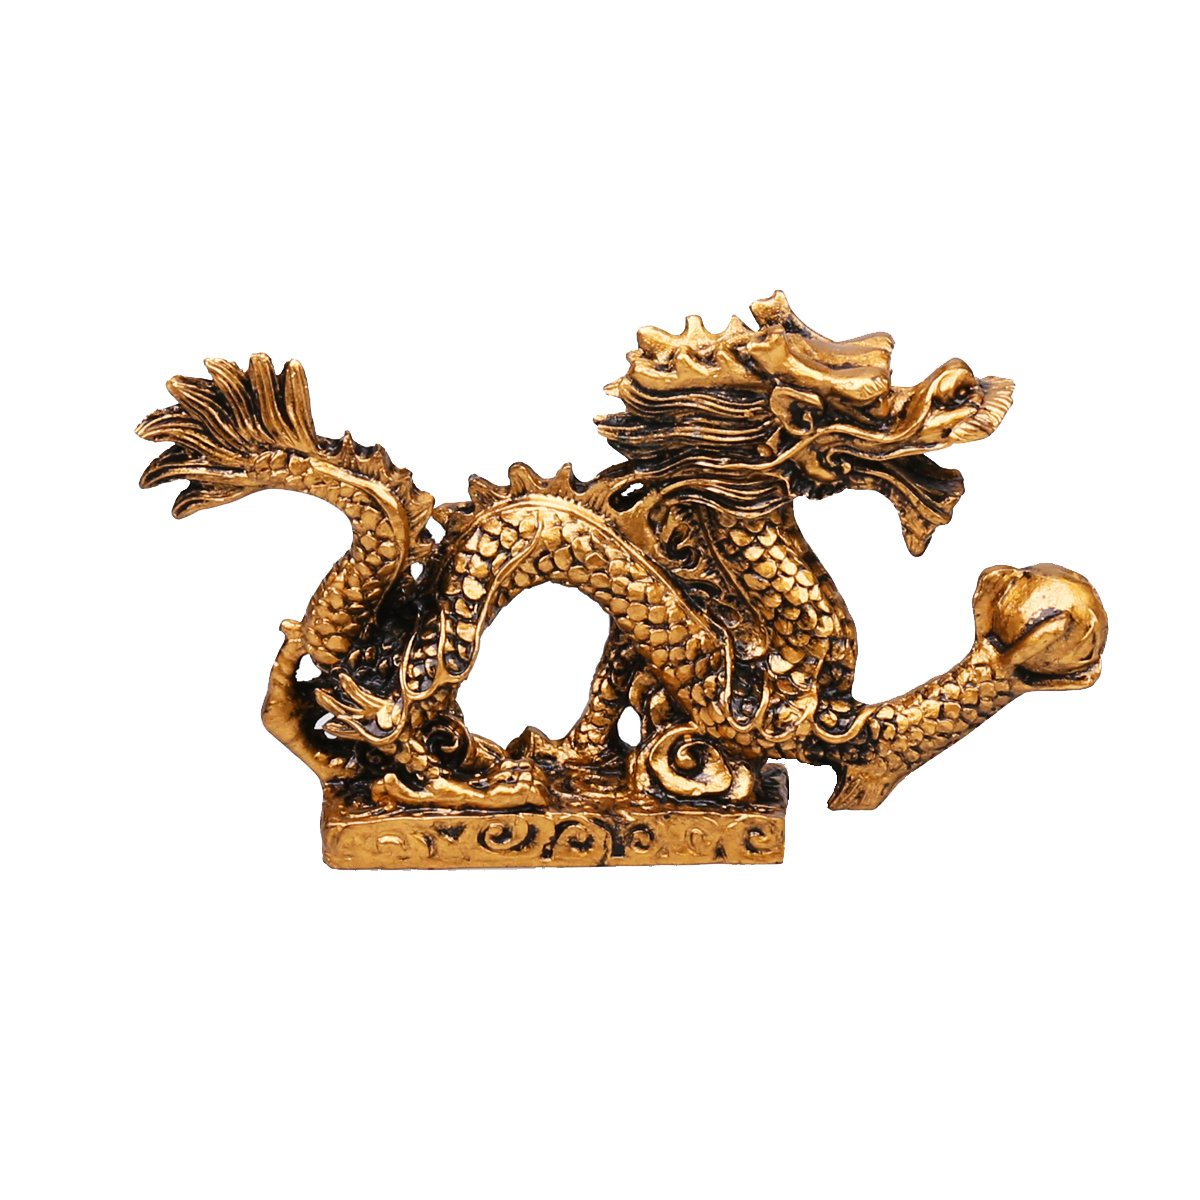 qiaoya Feng shui Dragon Luck & Success/feng shui resin dragon Statue Sculpture